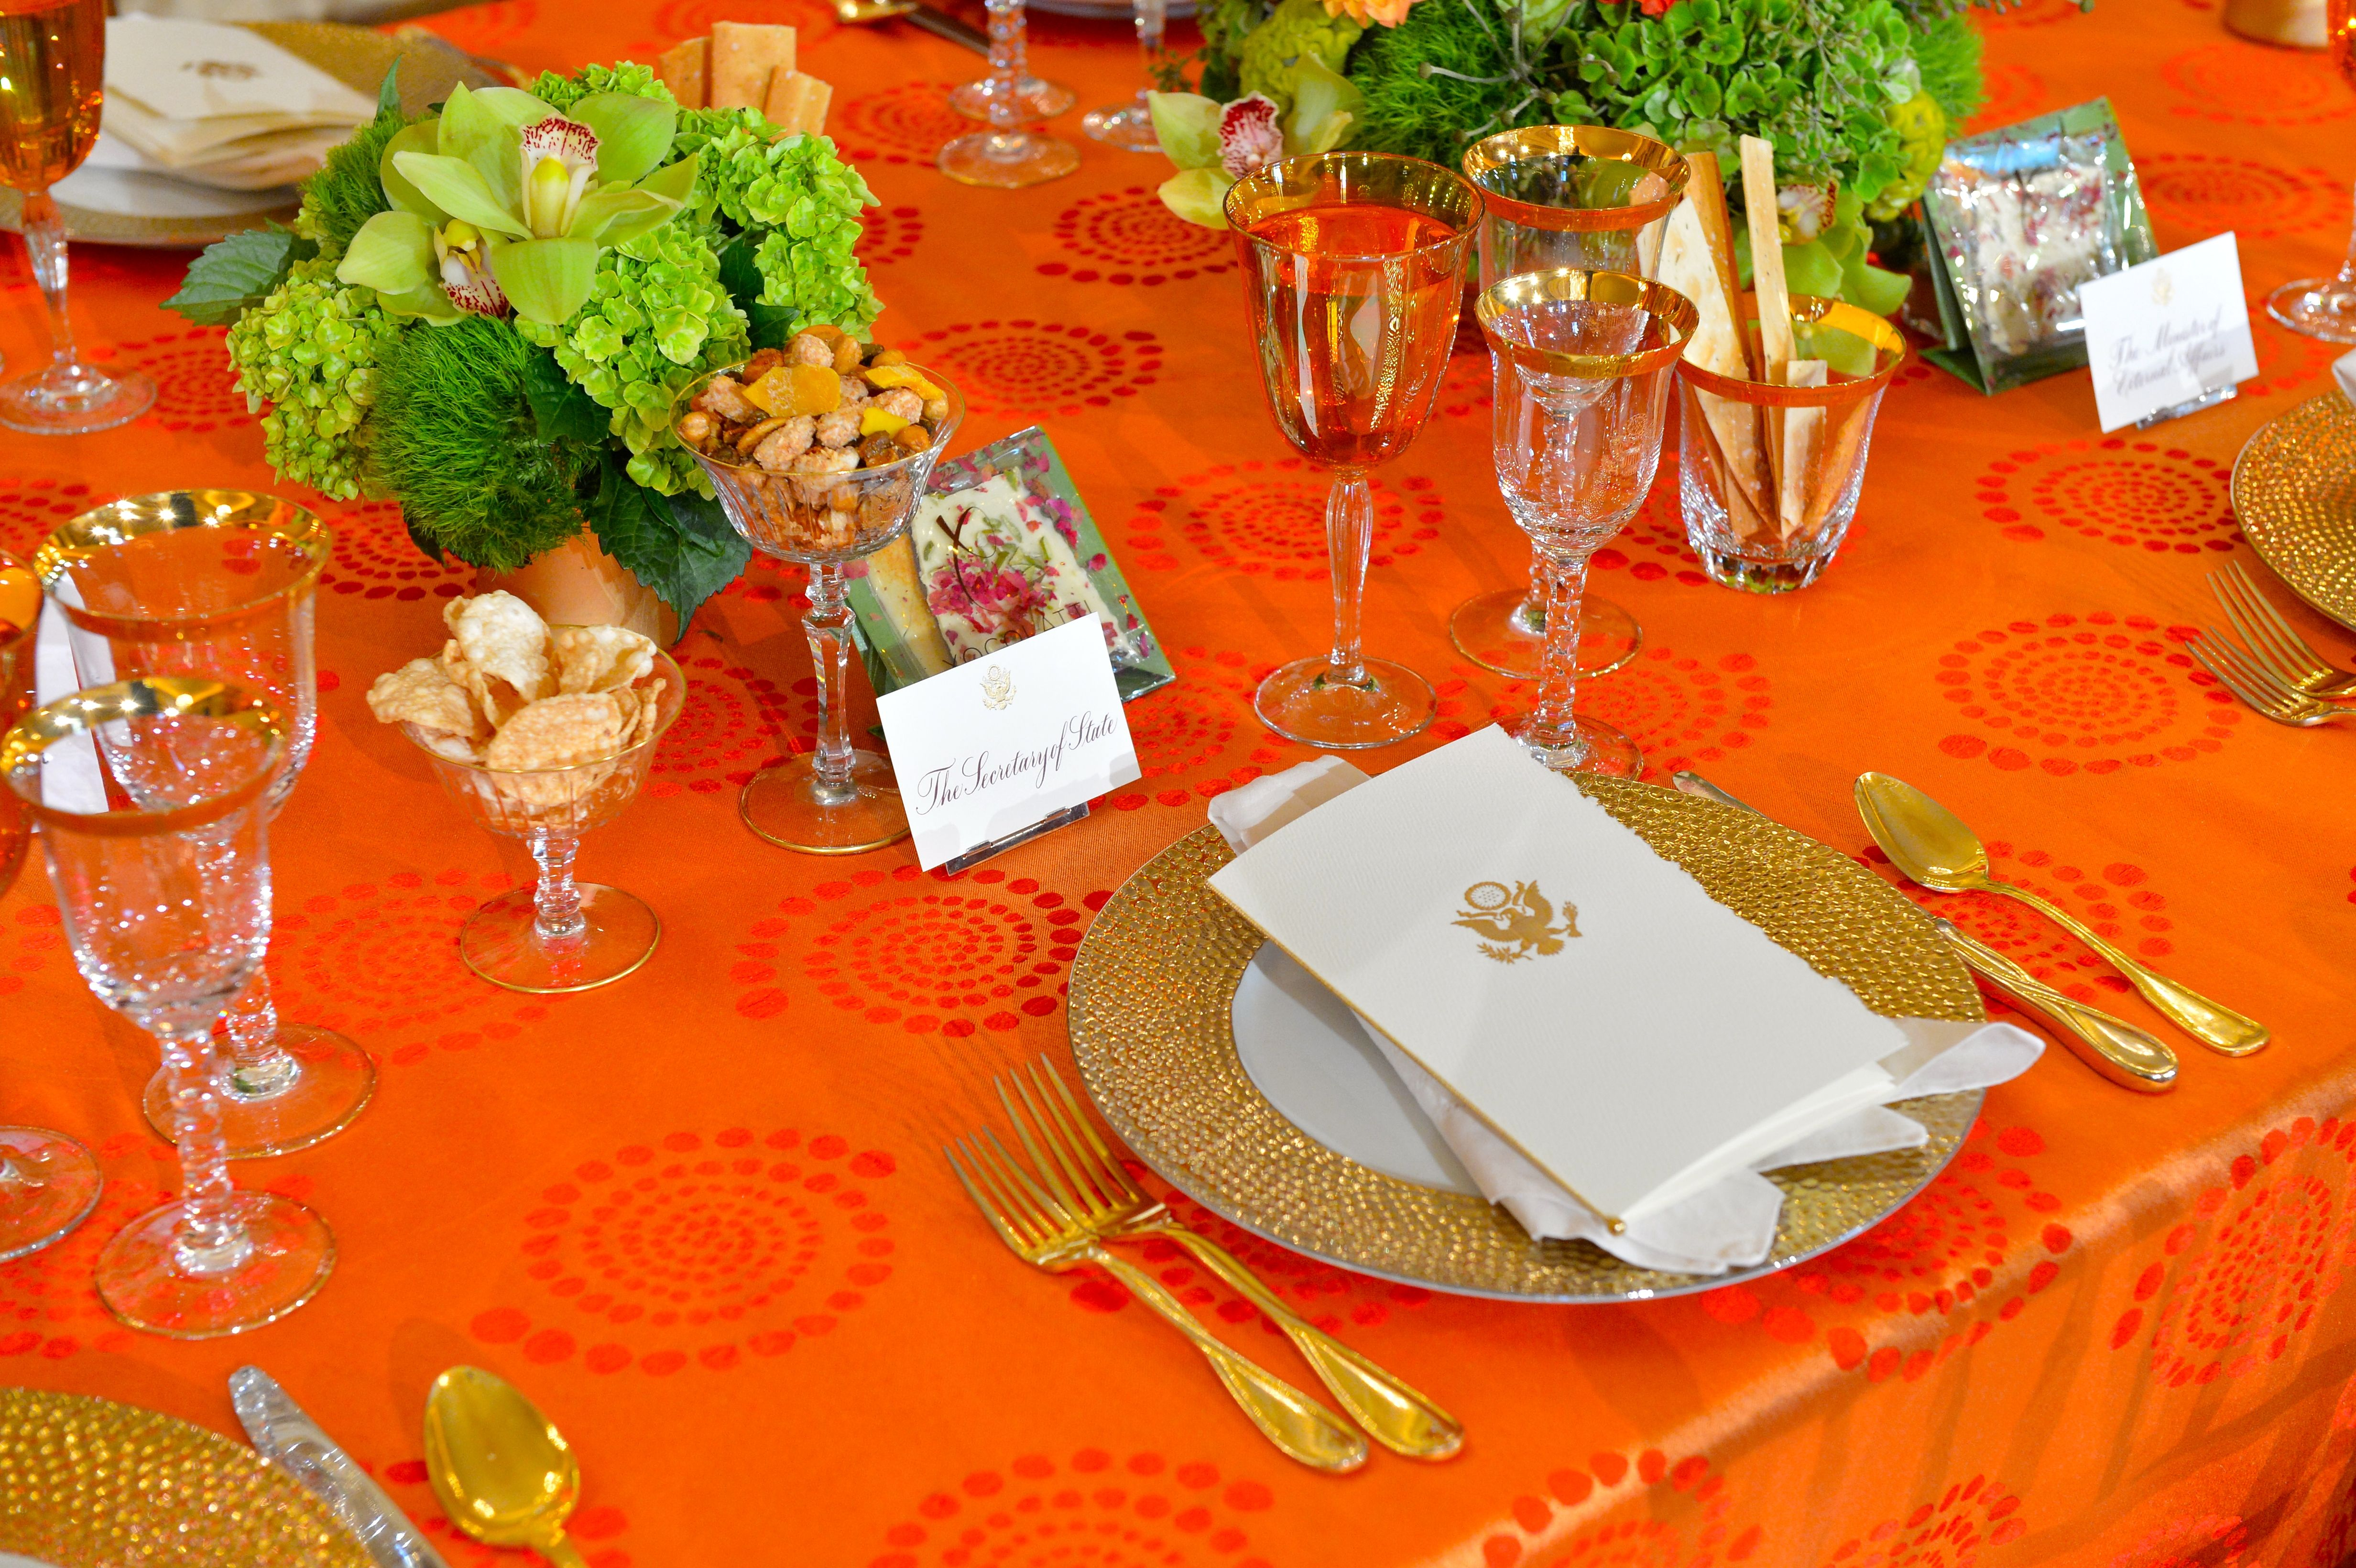 FileSecretary Kerryu0027s Table Setting Is Shown at the Luncheon for Indian Prime Minister Modi & File:Secretary Kerryu0027s Table Setting Is Shown at the Luncheon for ...